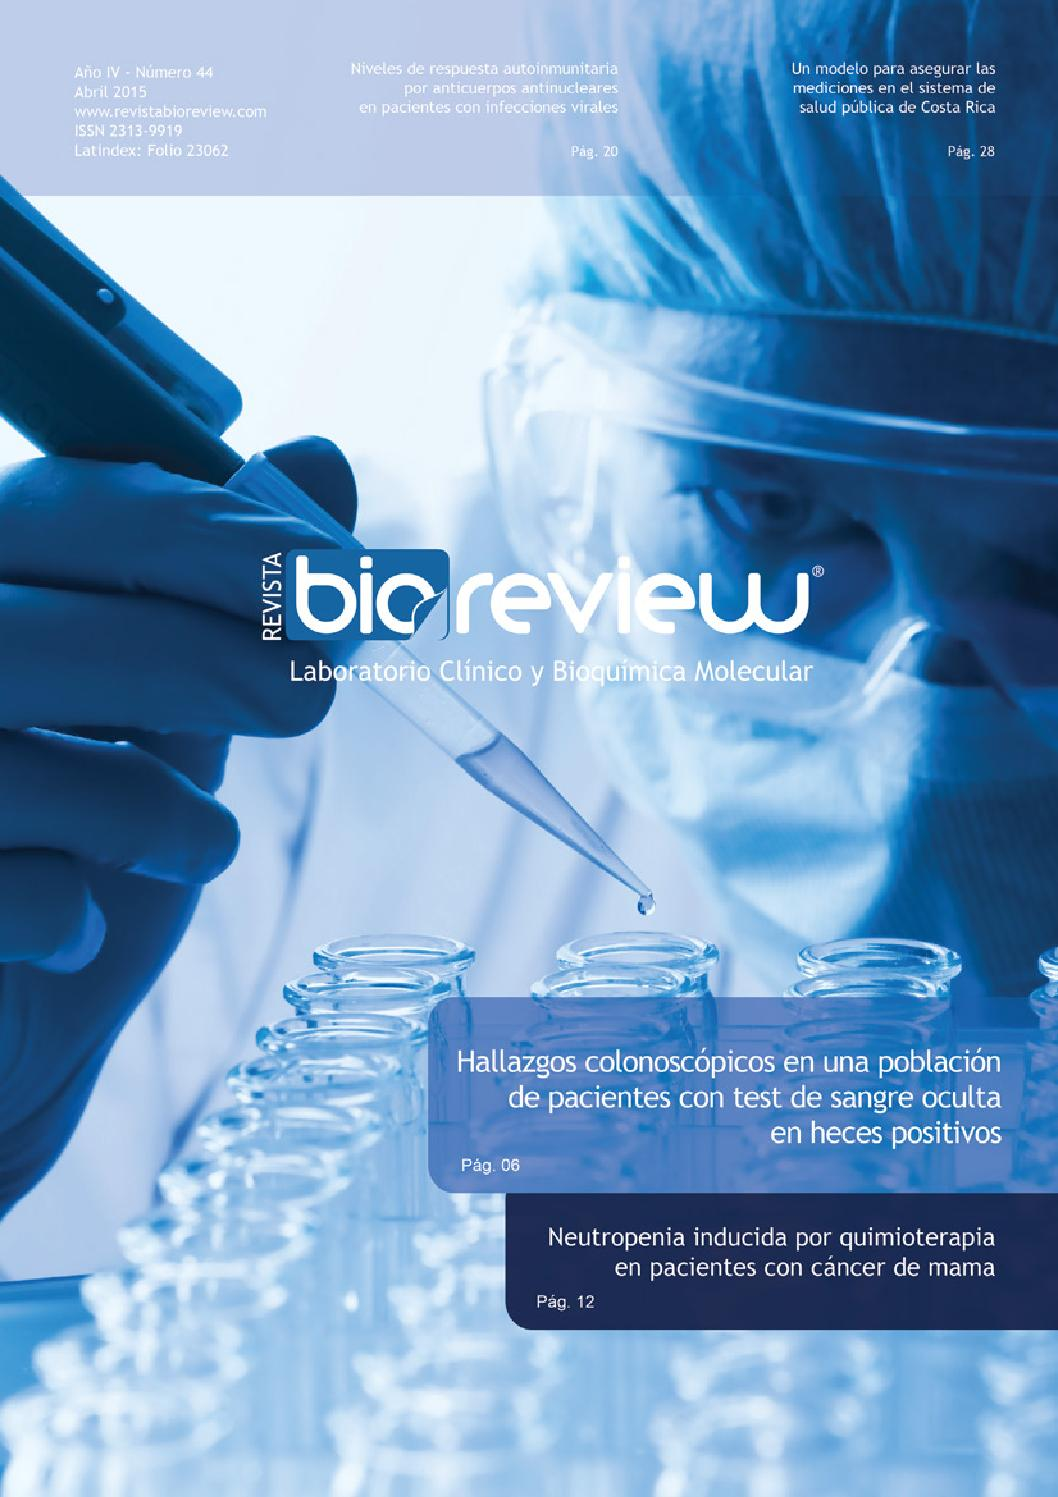 Revista Bioreview Edición 44 by RW SA - issuu